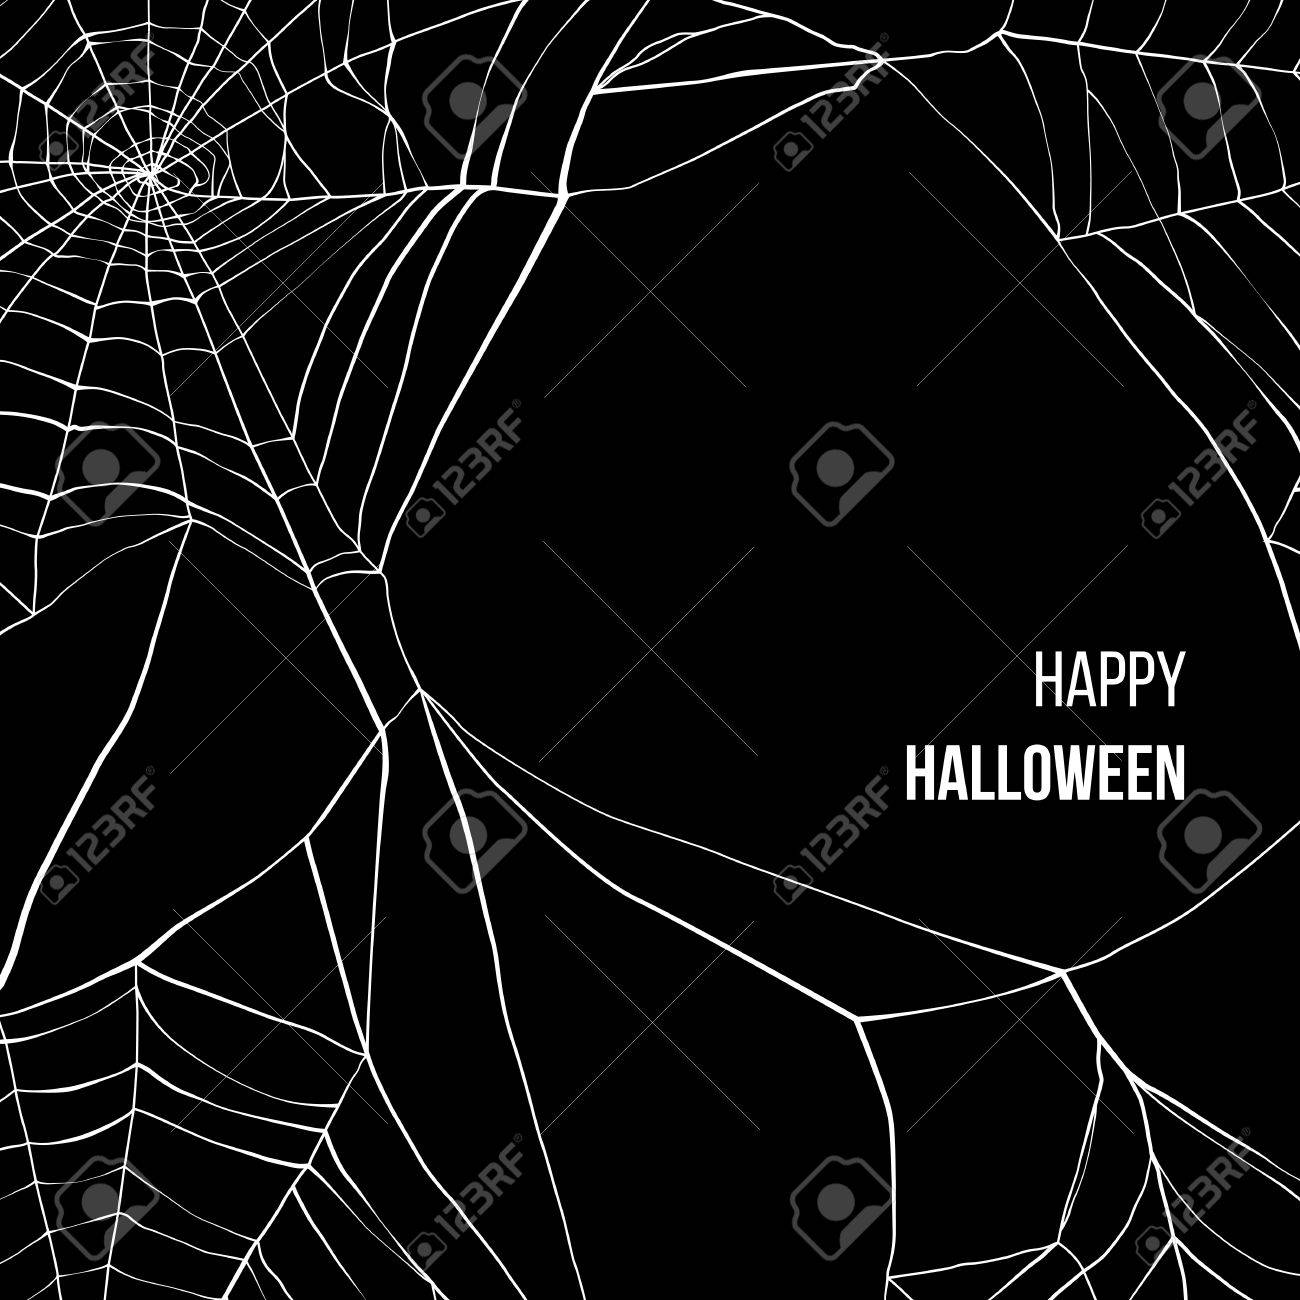 Black background with spider web and place for your text - 43870921